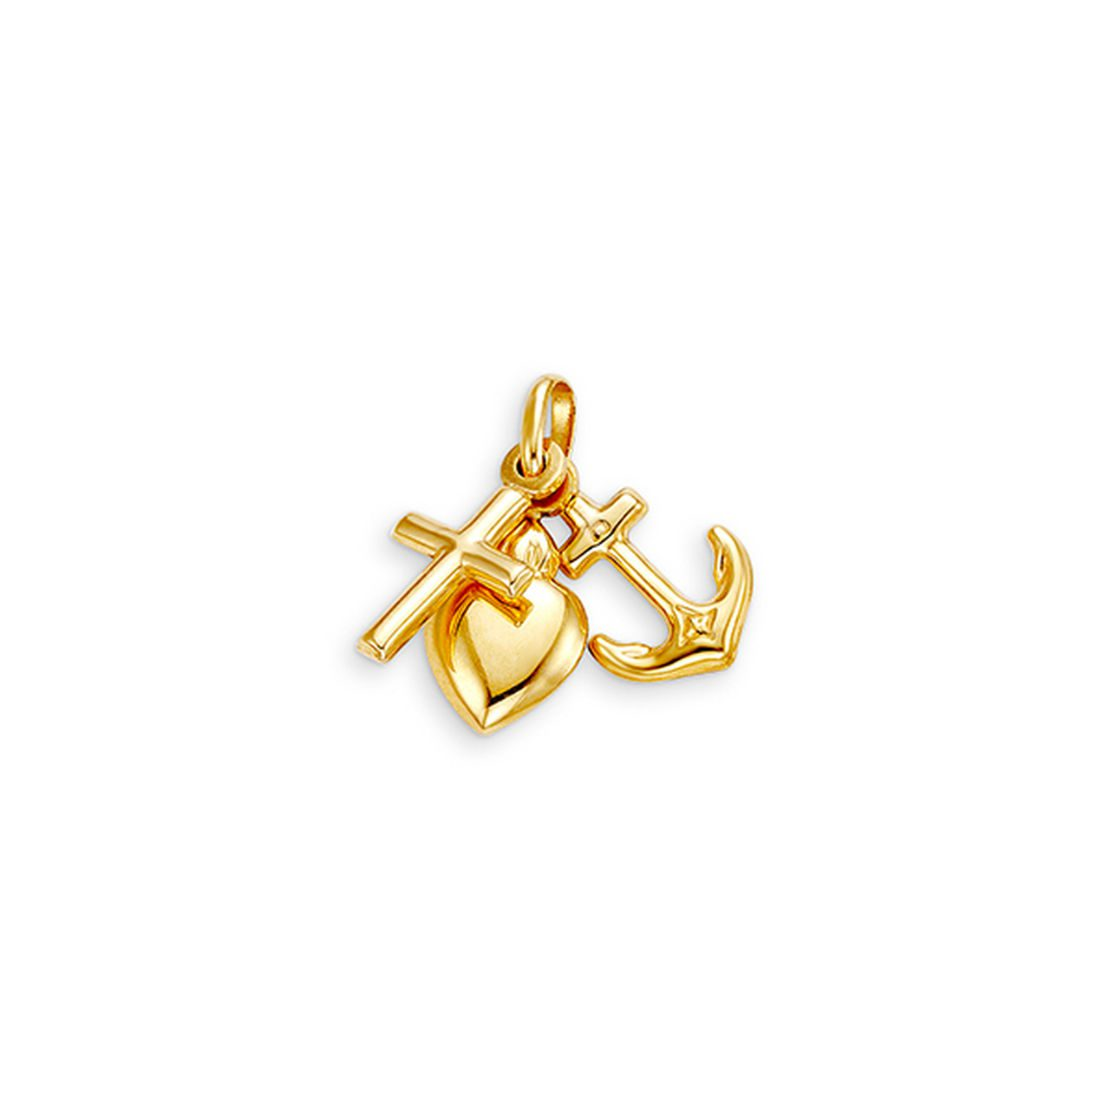 10k yellow gold faith, hope and charity charms